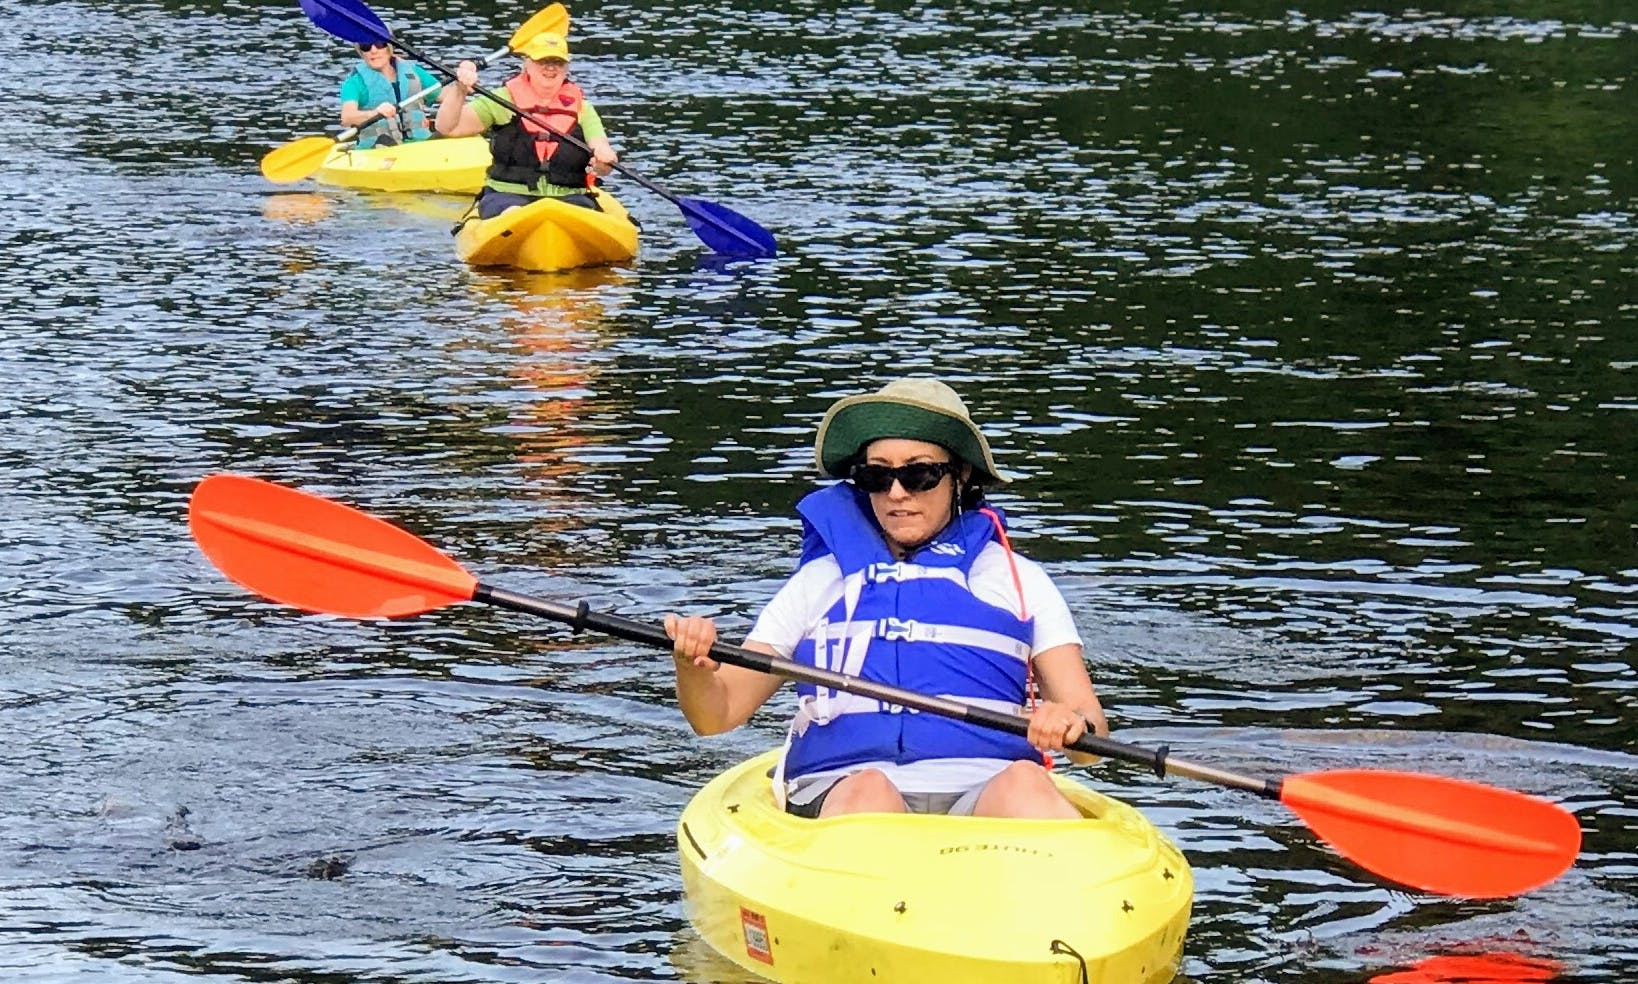 Come join us for a new kayaking adventure in Bethlehem, Pennsylvania